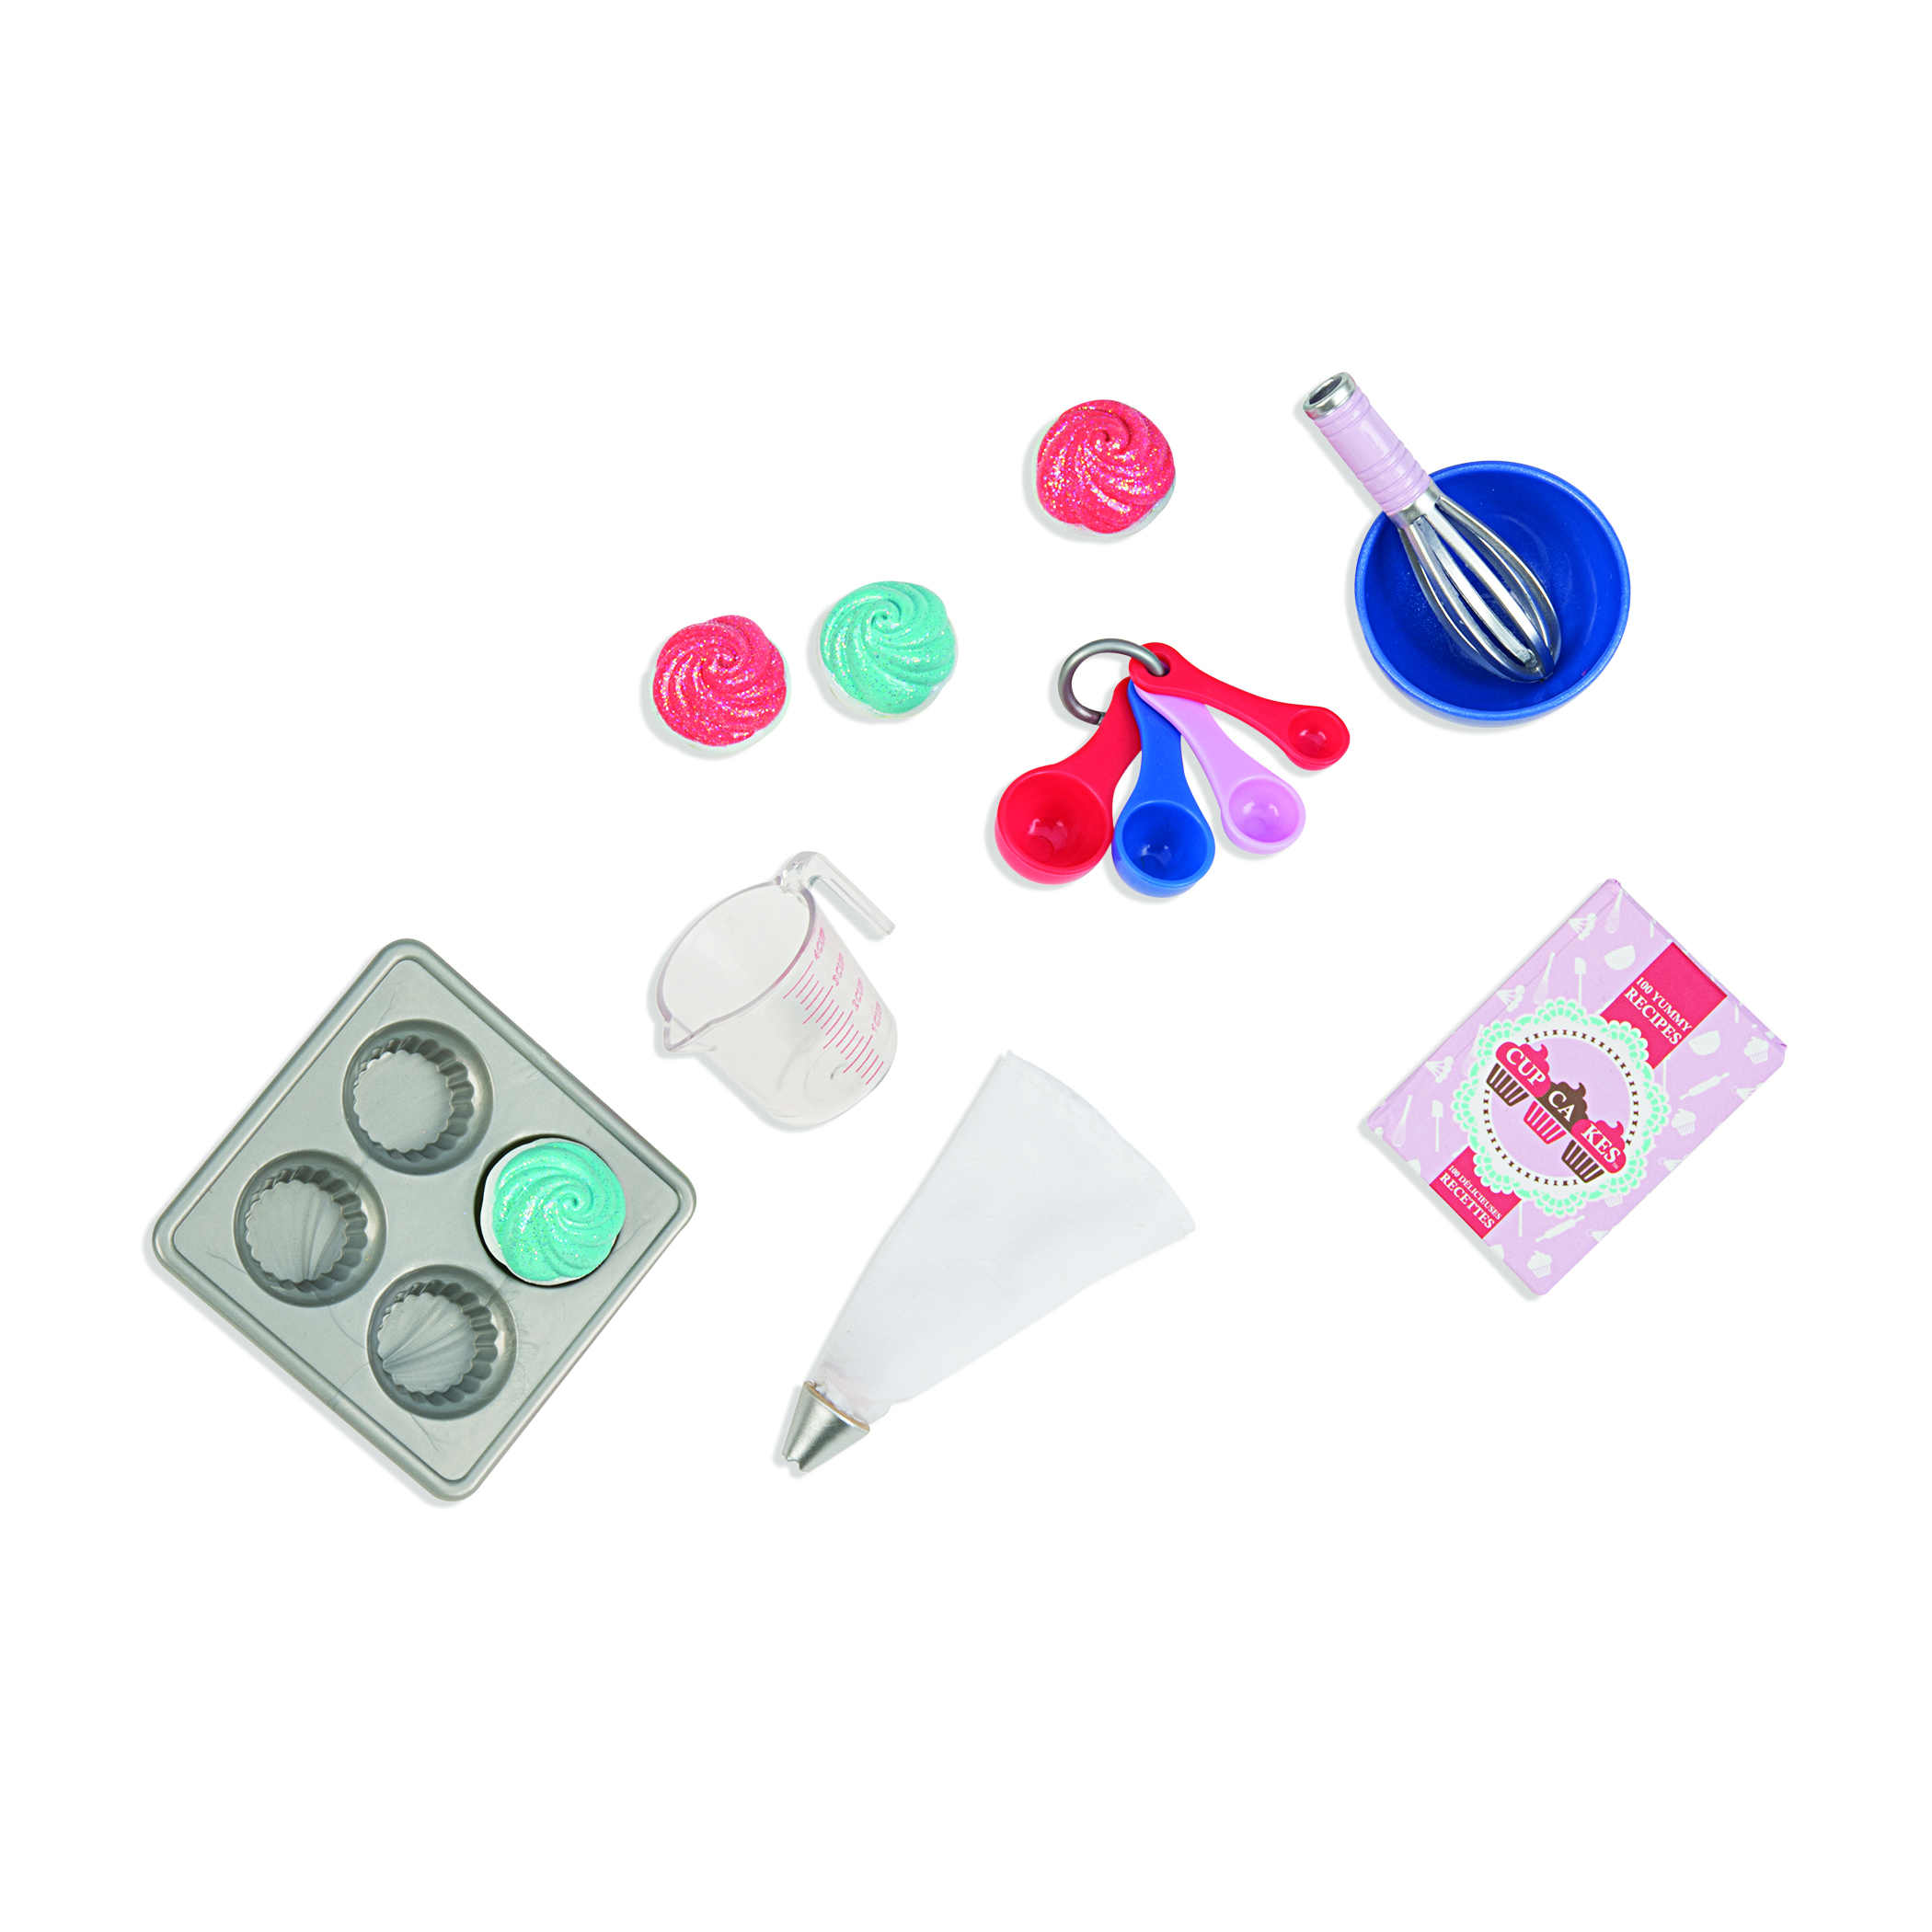 Mini Retro accessories OG -Bake Me Cupcakes Kit